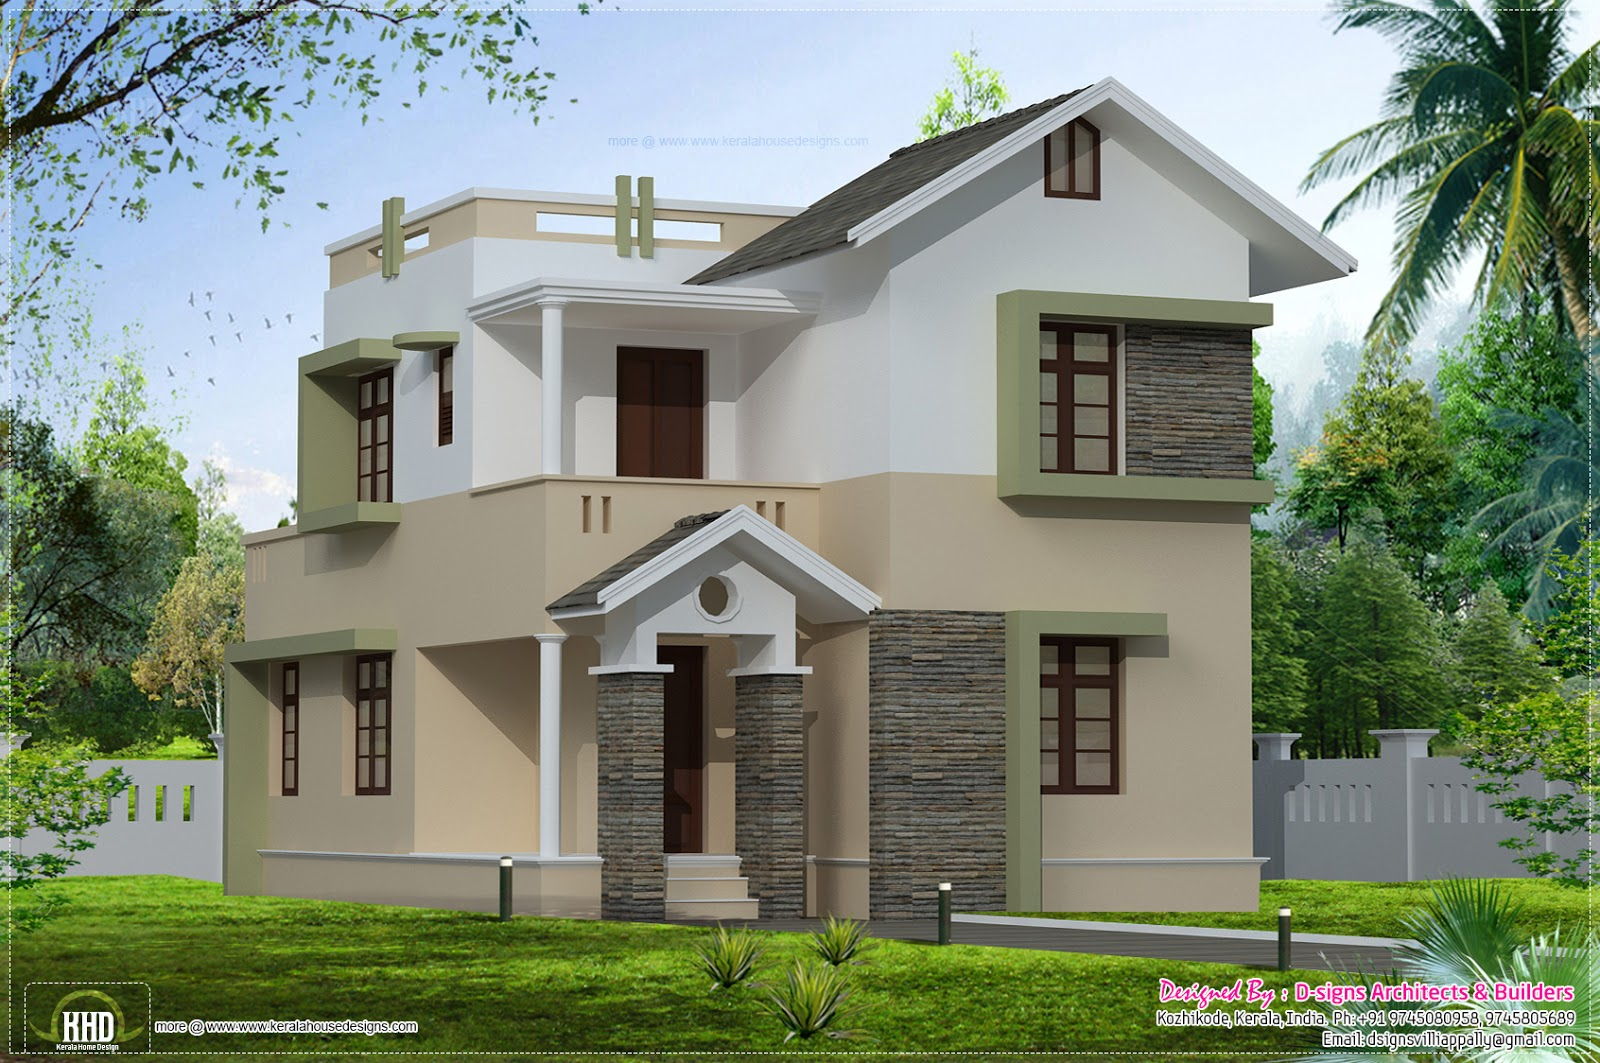 1400 Square Feet Small Villa Elevation Kerala Home: small house indian style